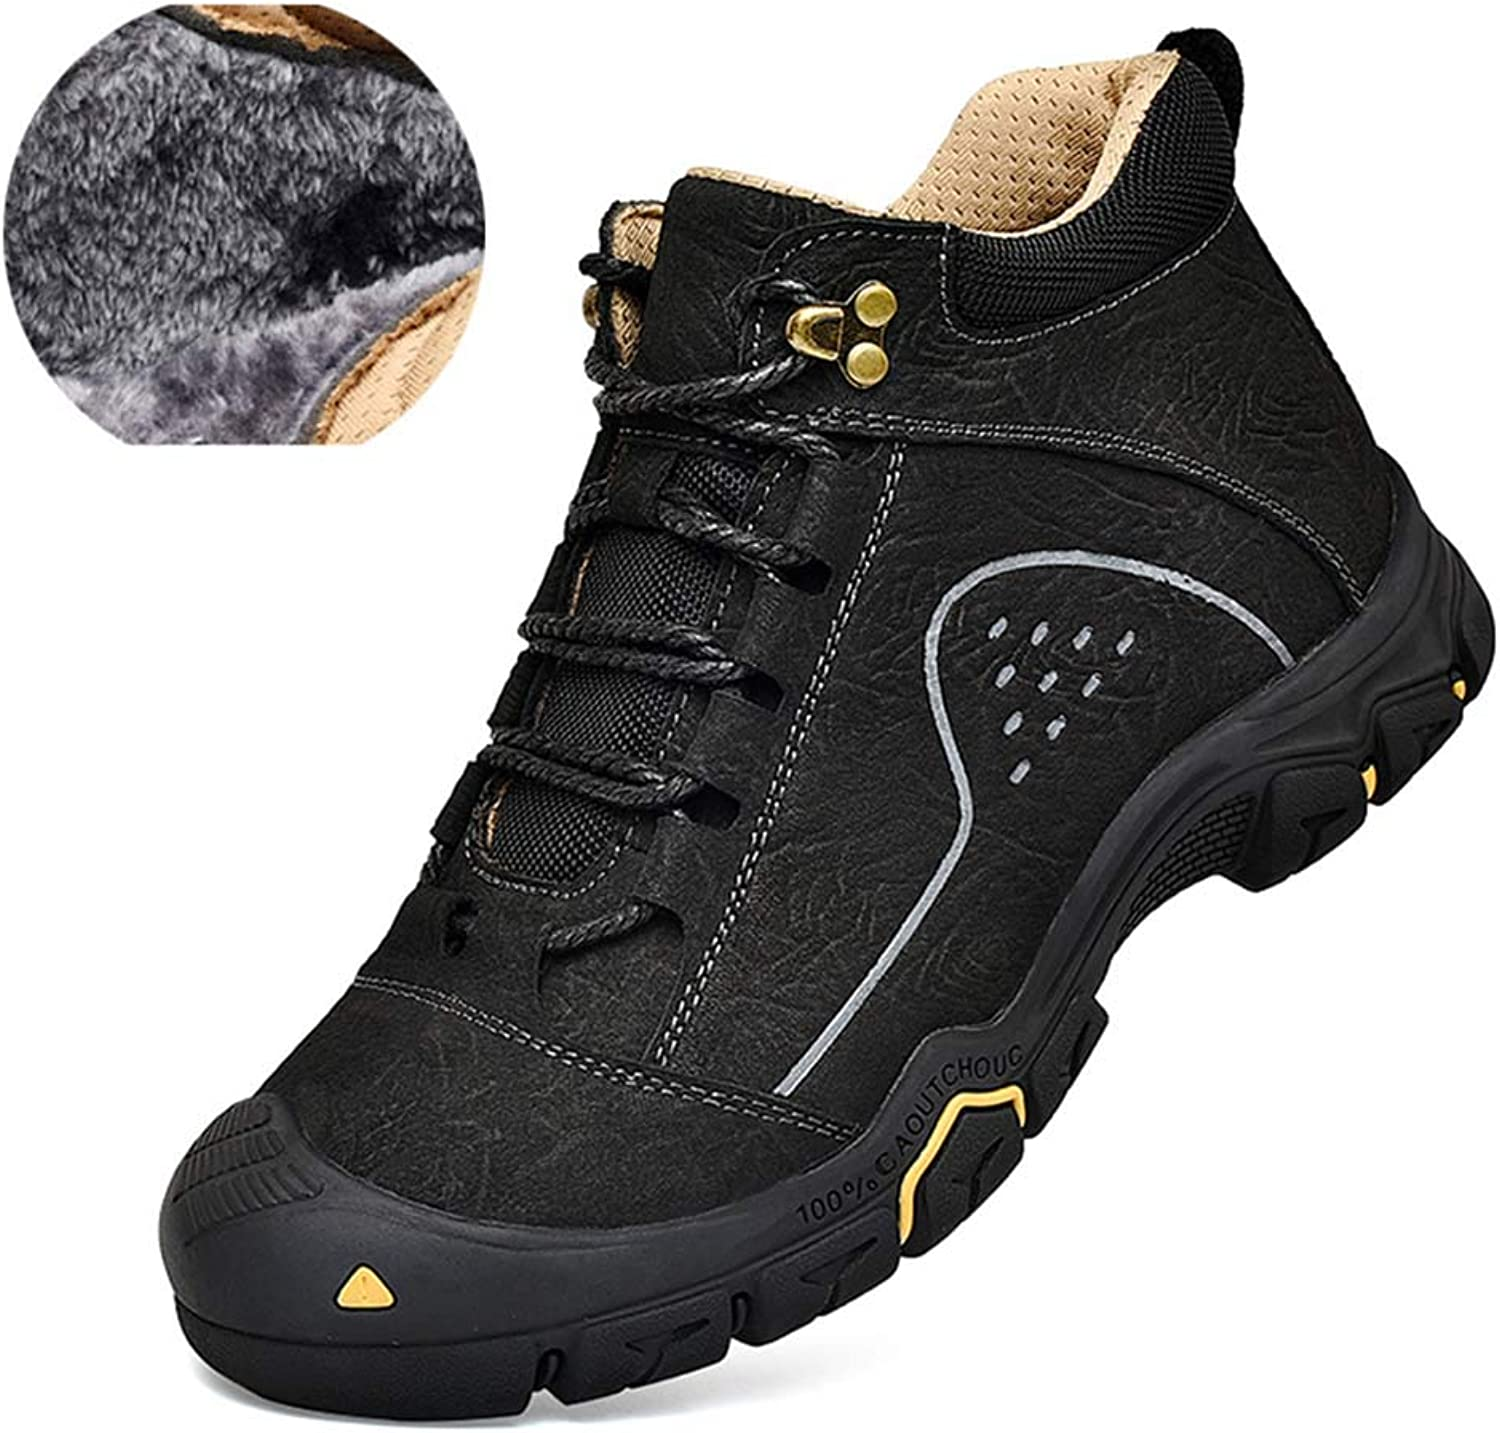 Men's Winter Hiking shoes Outdoor Casual high-top Non-Slip wear-Resistant Leather shoes